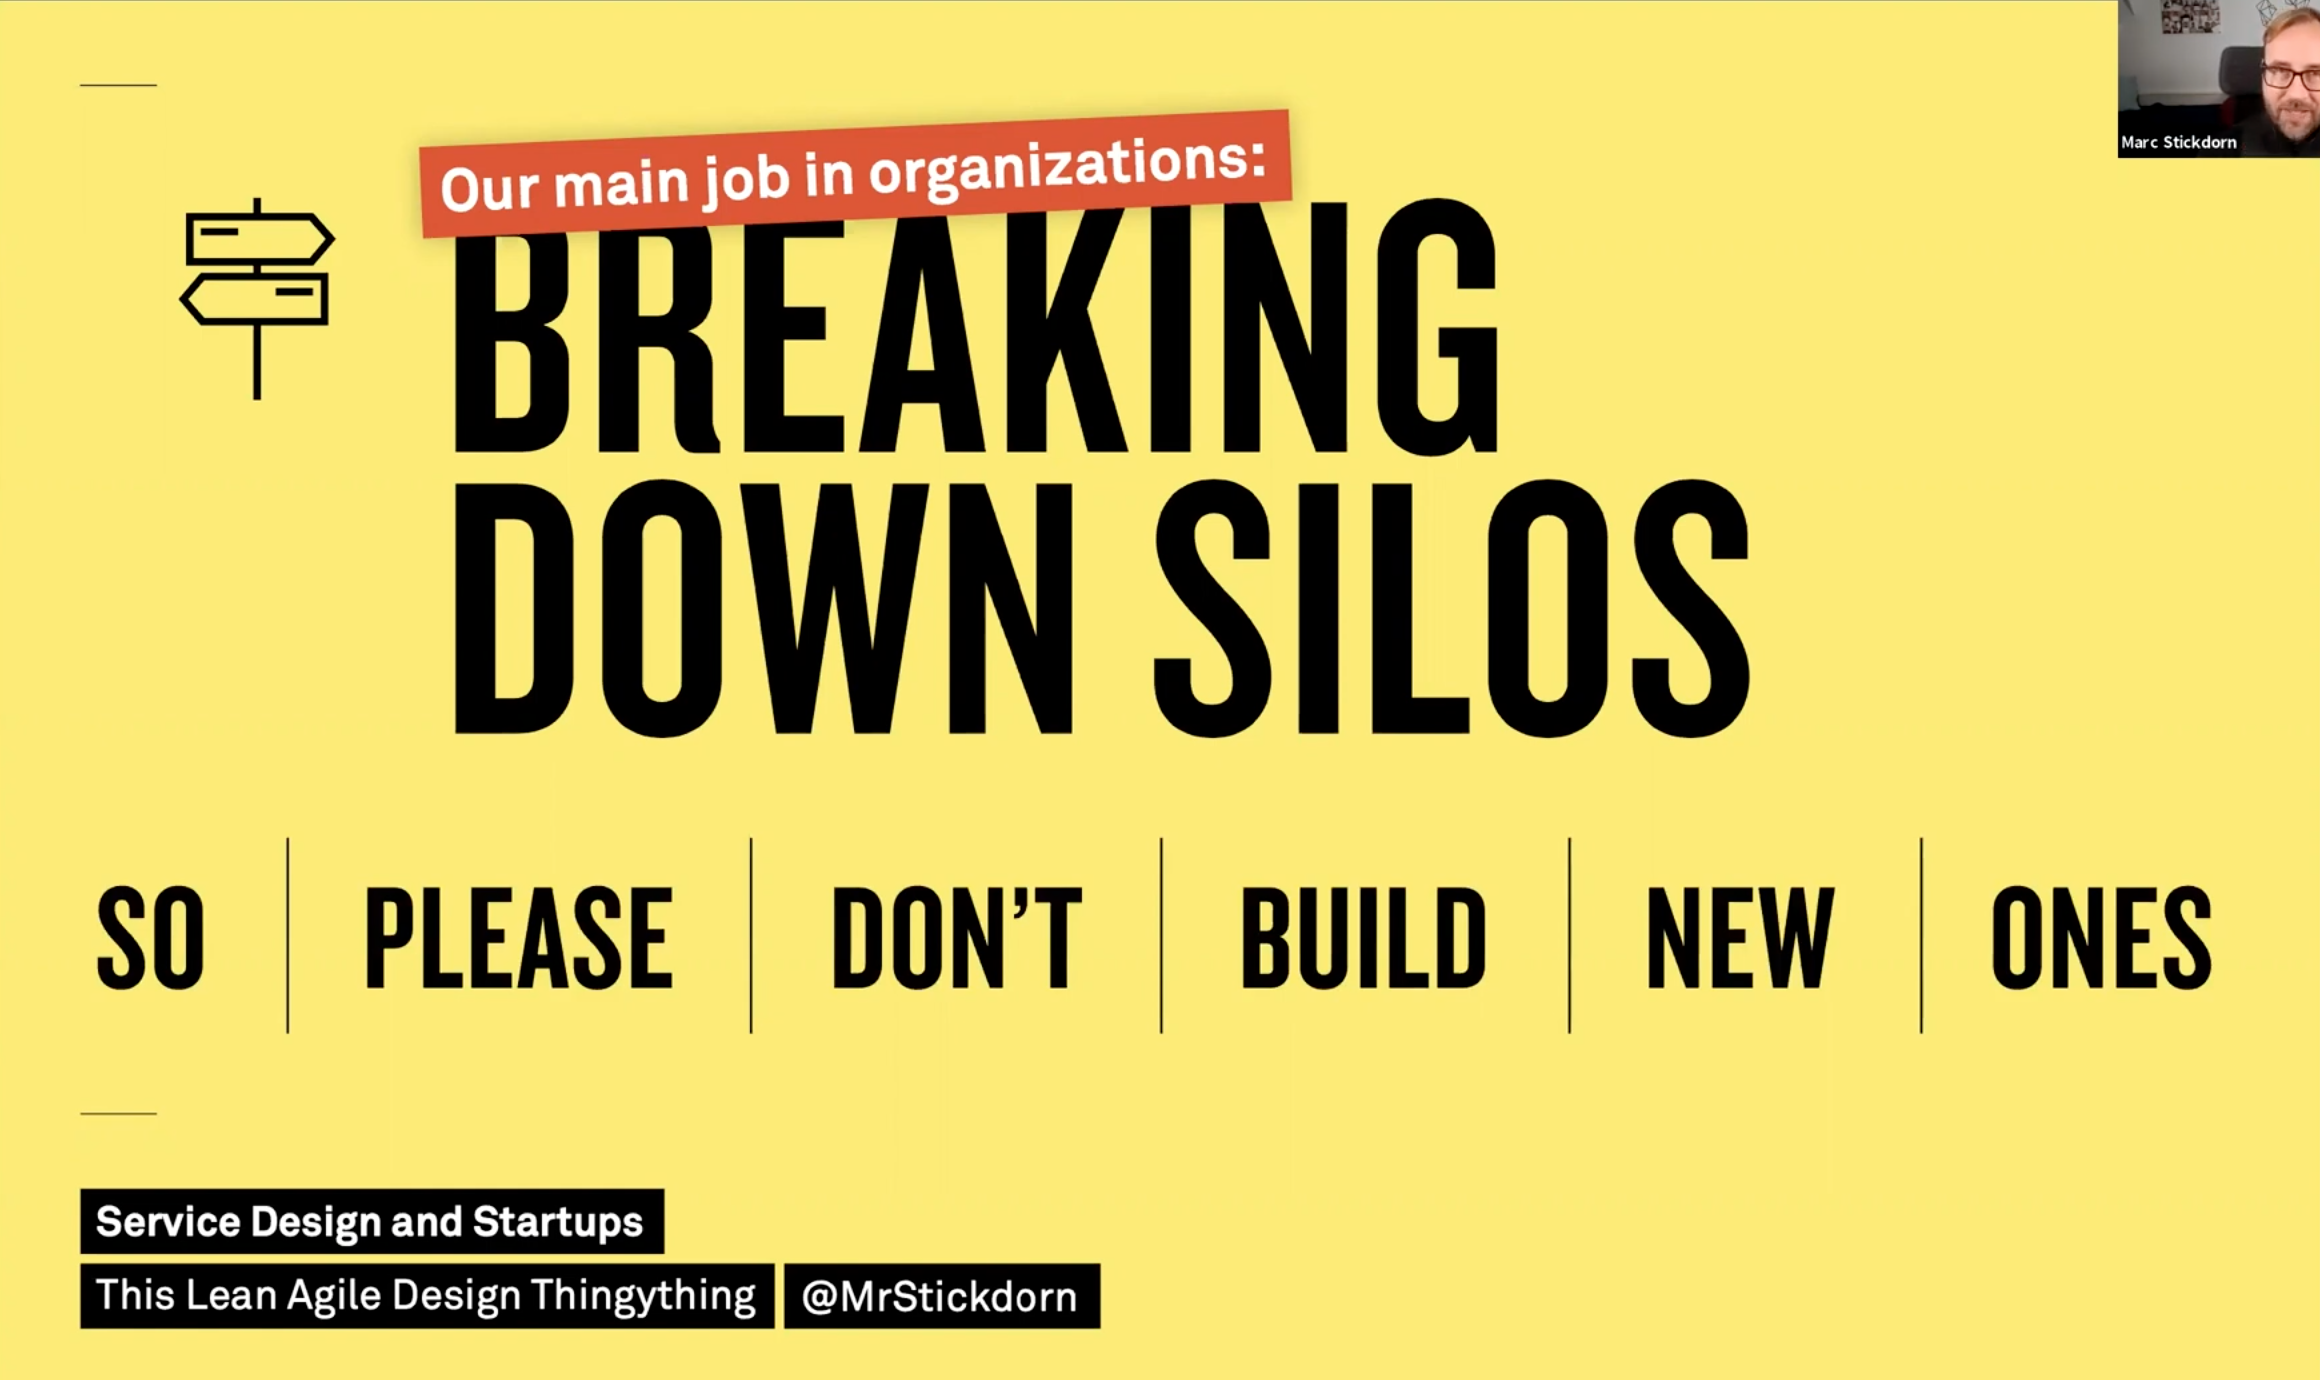 a service designer's main job in an organization is to break down silos